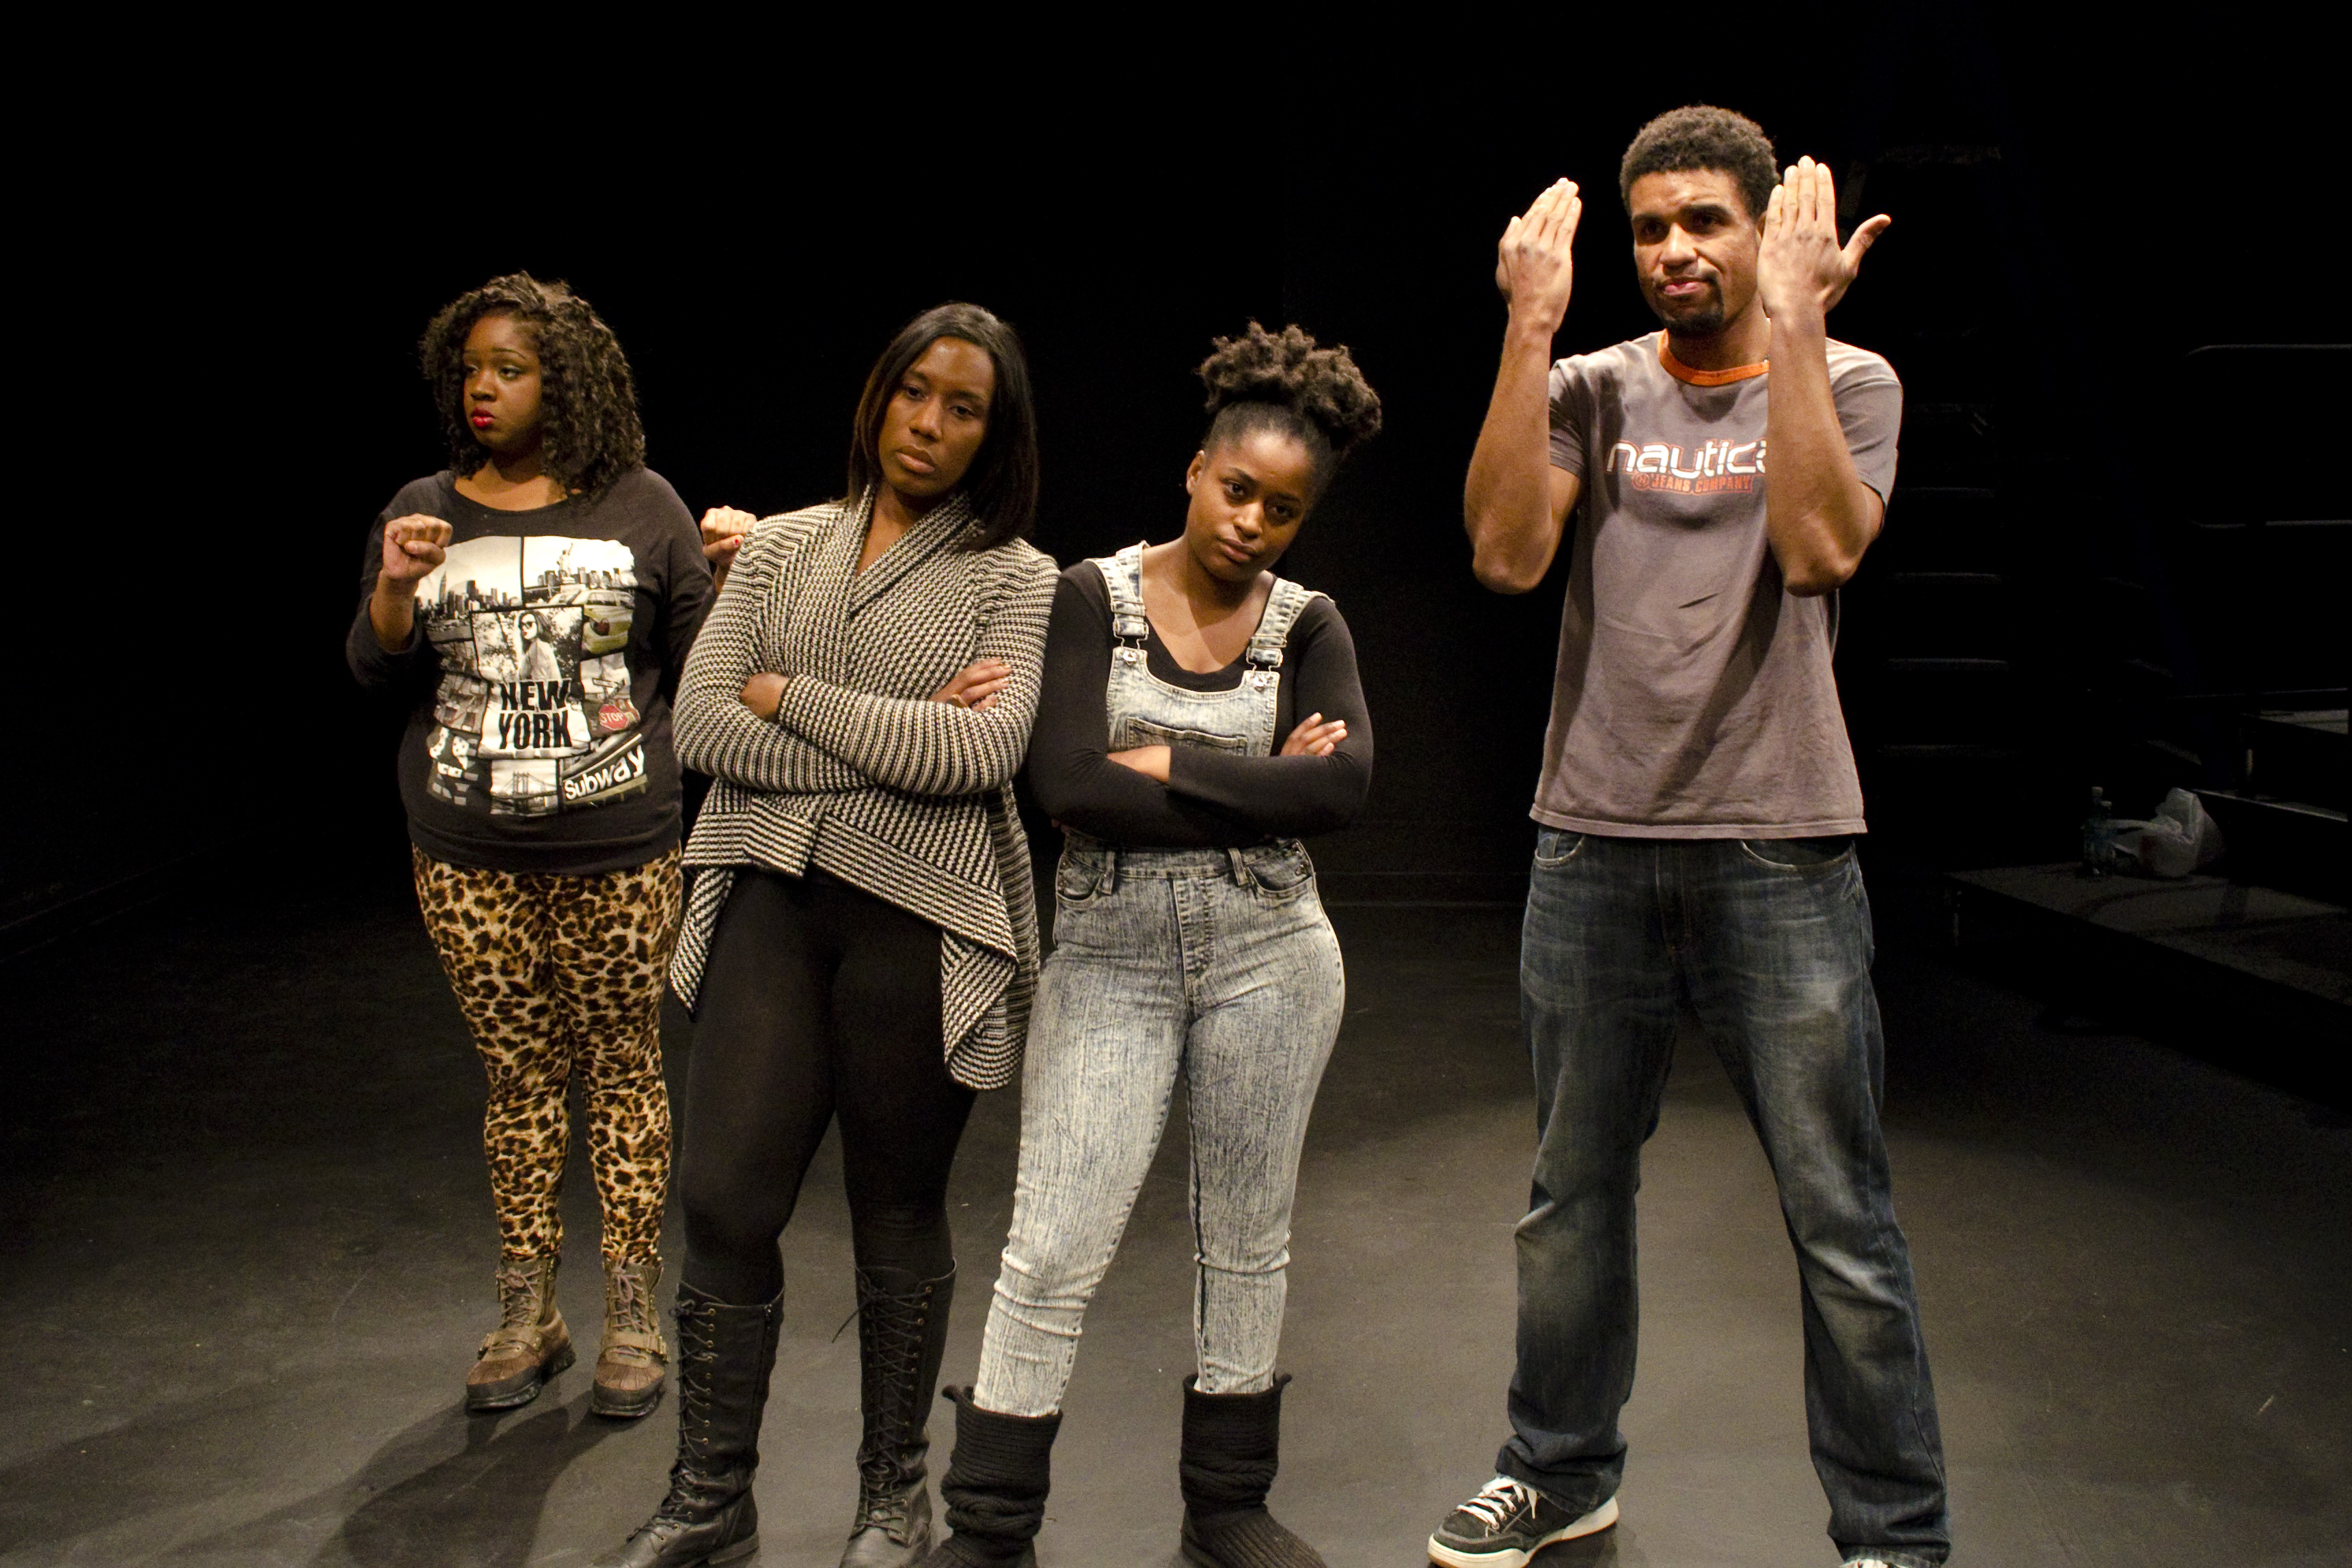 Theatre of the Oppressed brings healing art to St. Louis